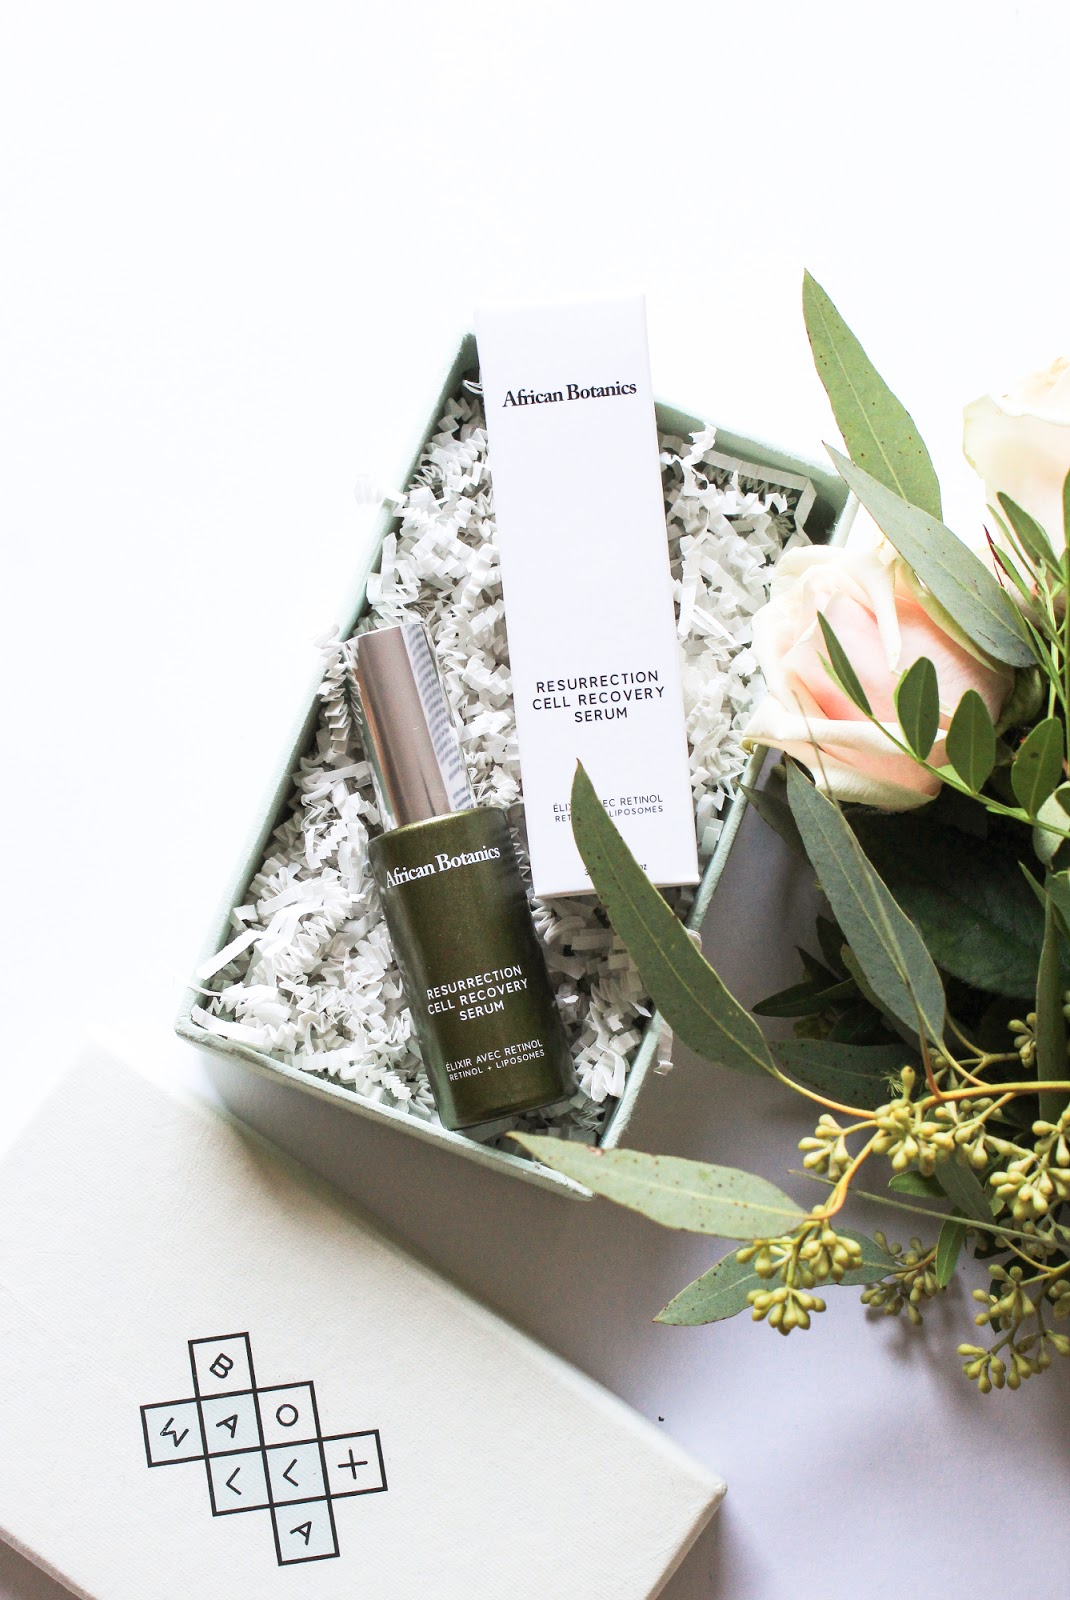 African Botanics Resurrection Cell Recovery Serum October Boxwalla Beauty Box. Plant based retinol, peptides